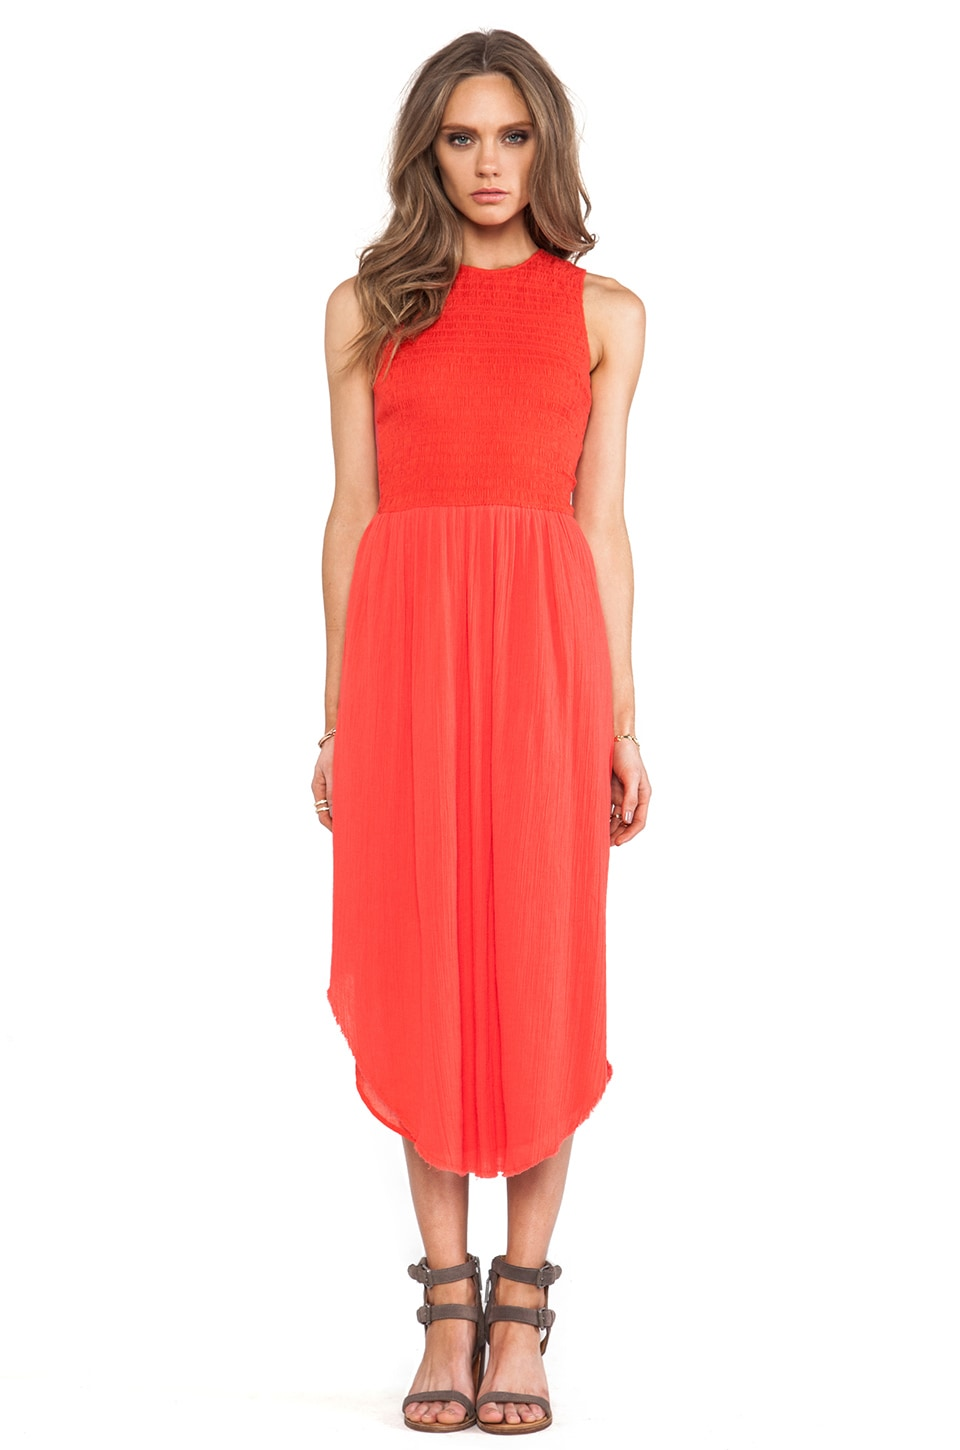 Ulla Johnson Cowrie Dress in Coral